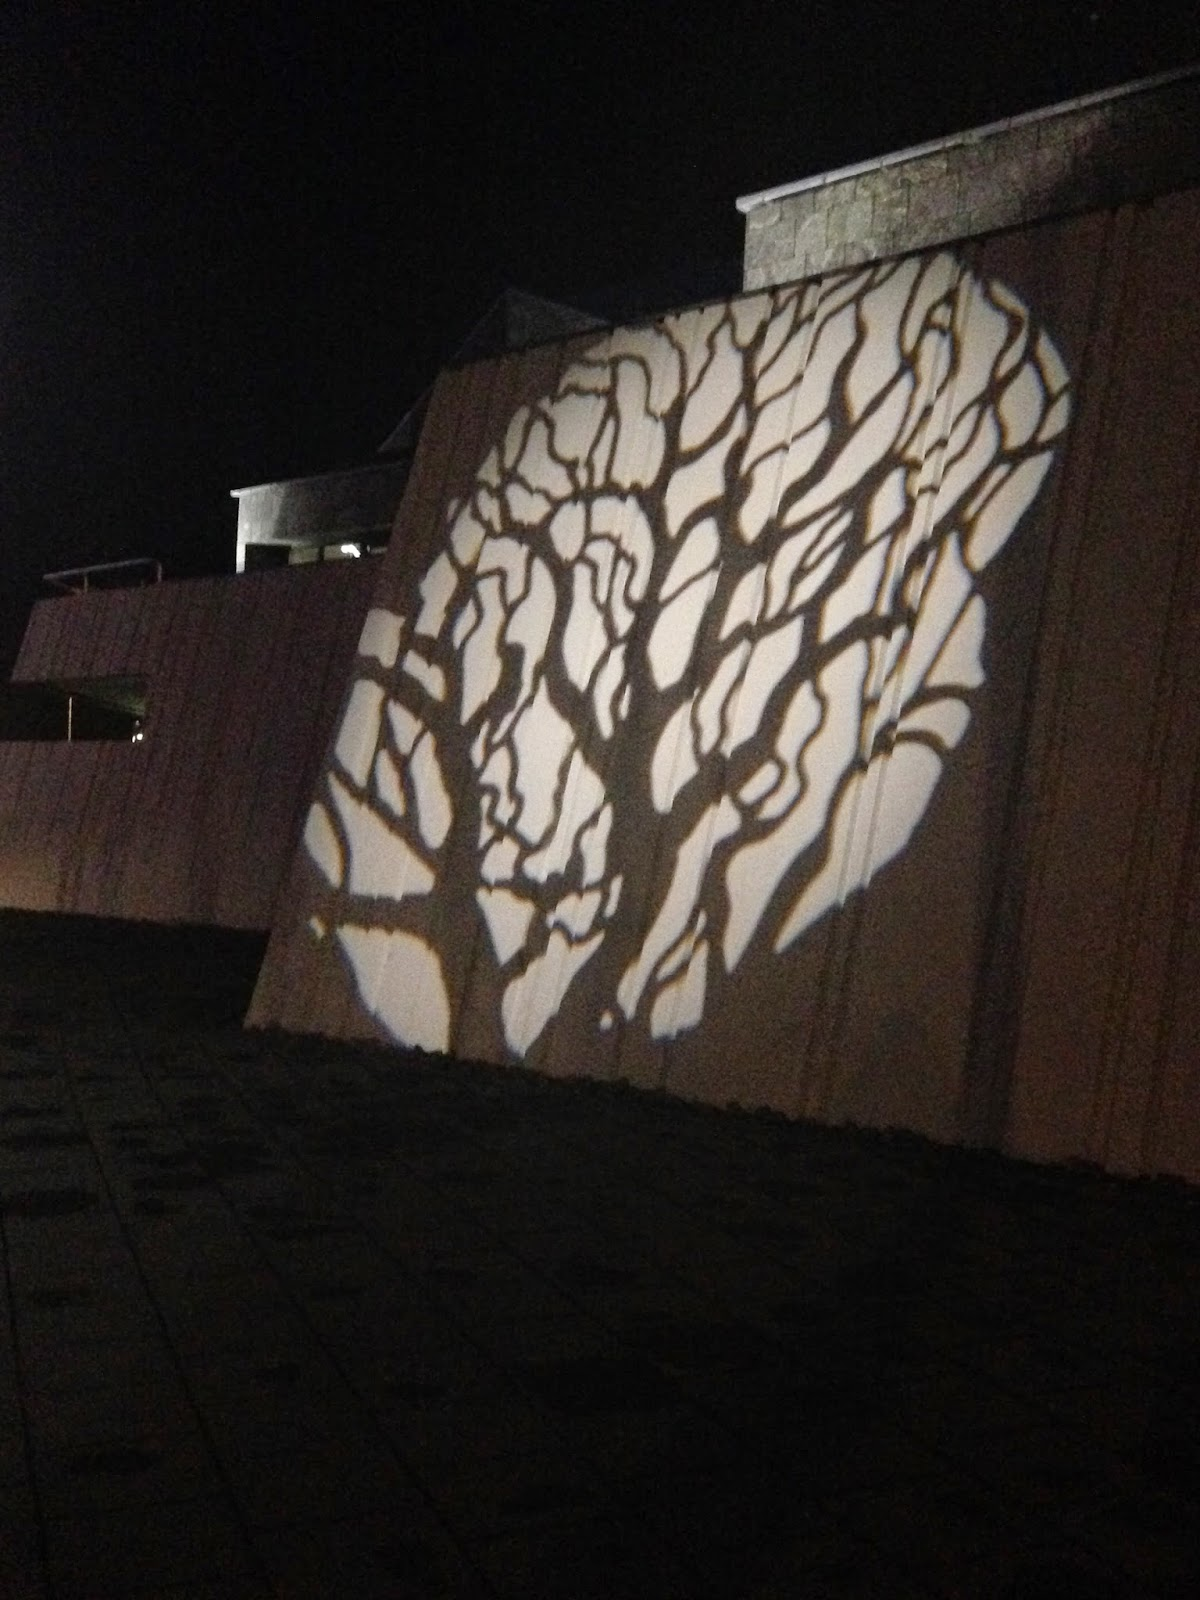 Cool projection on the streets